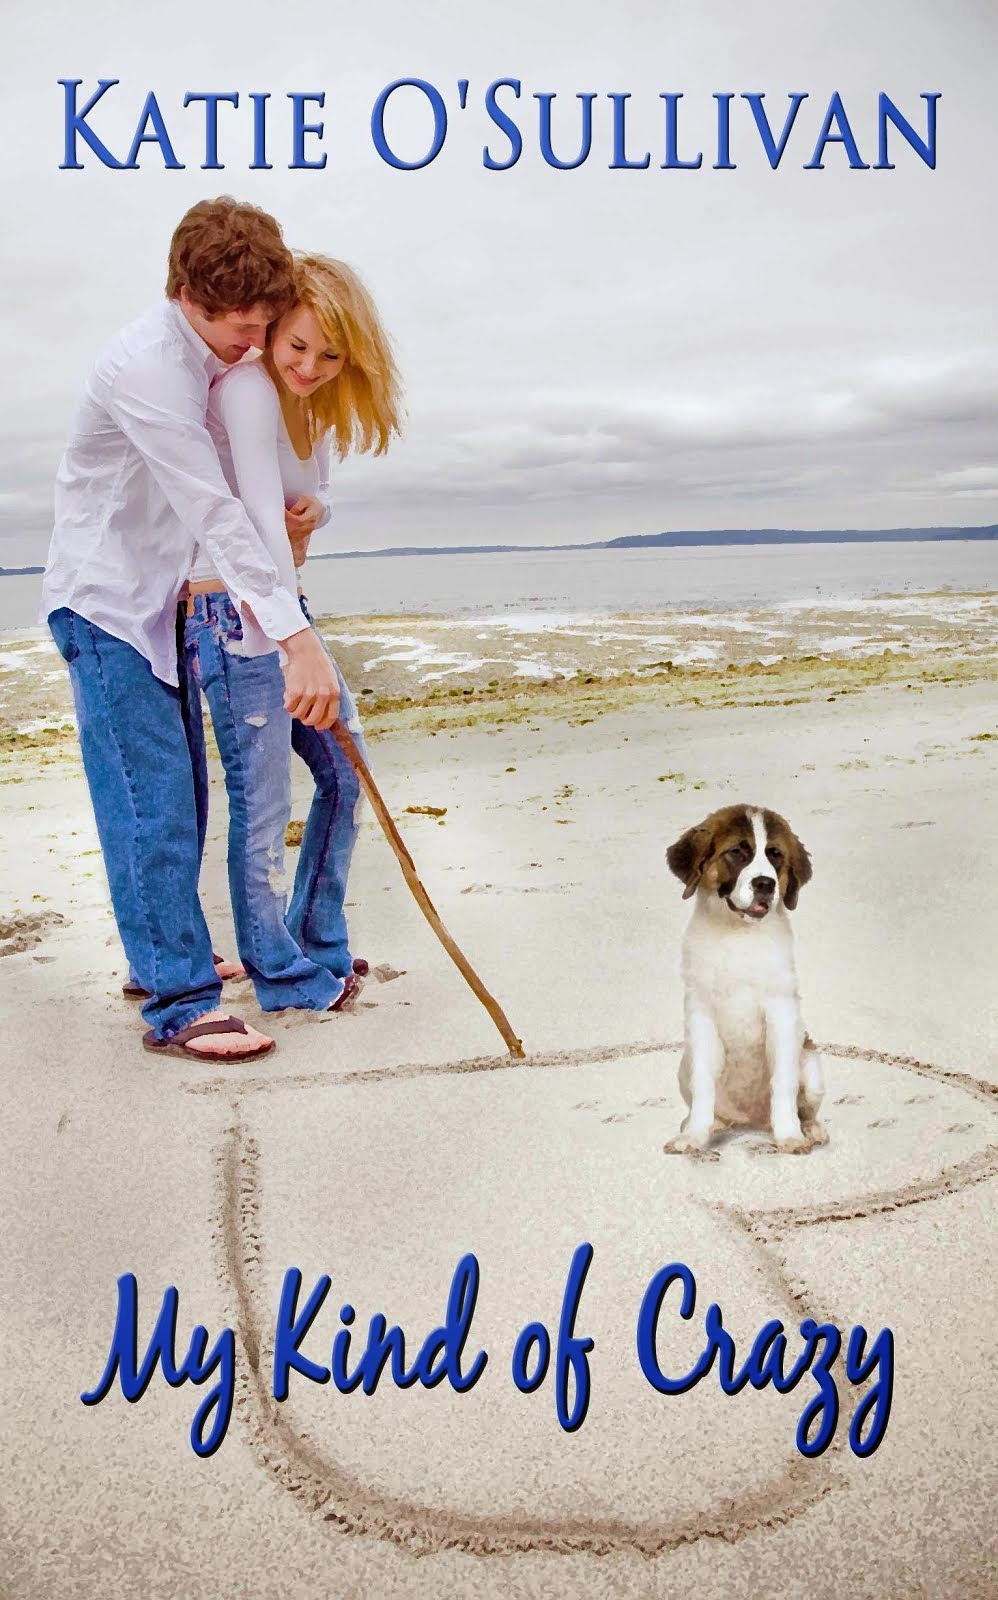 Best Selling Cape Cod Romance